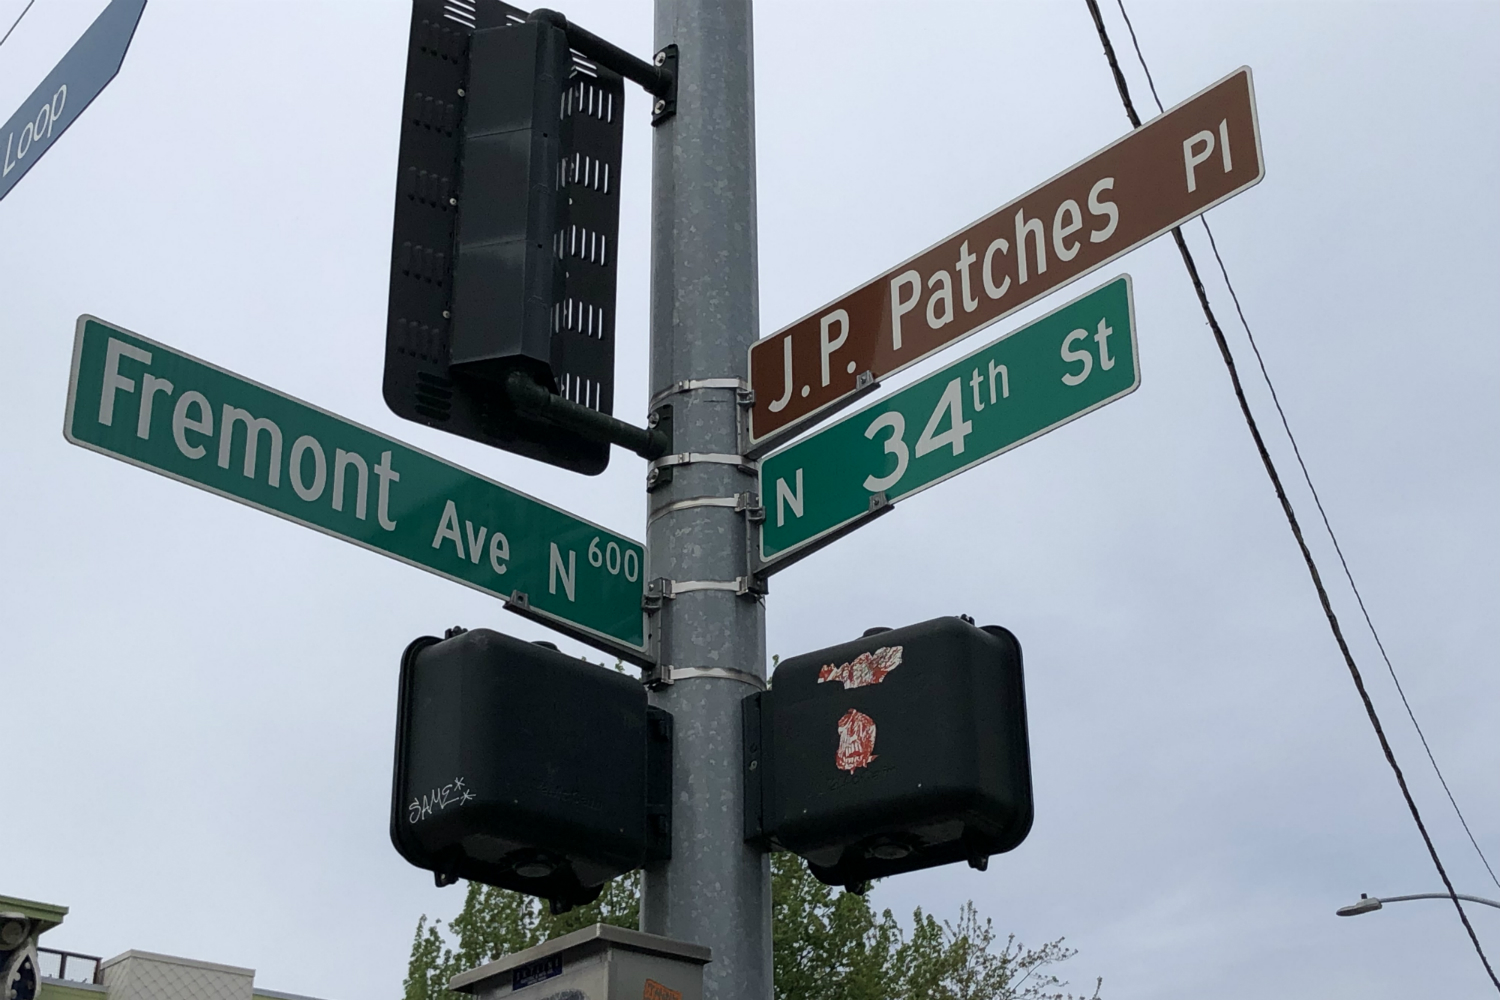 <p>J.P. Patches Place sign. (Credit: Jeff Totey)</p>